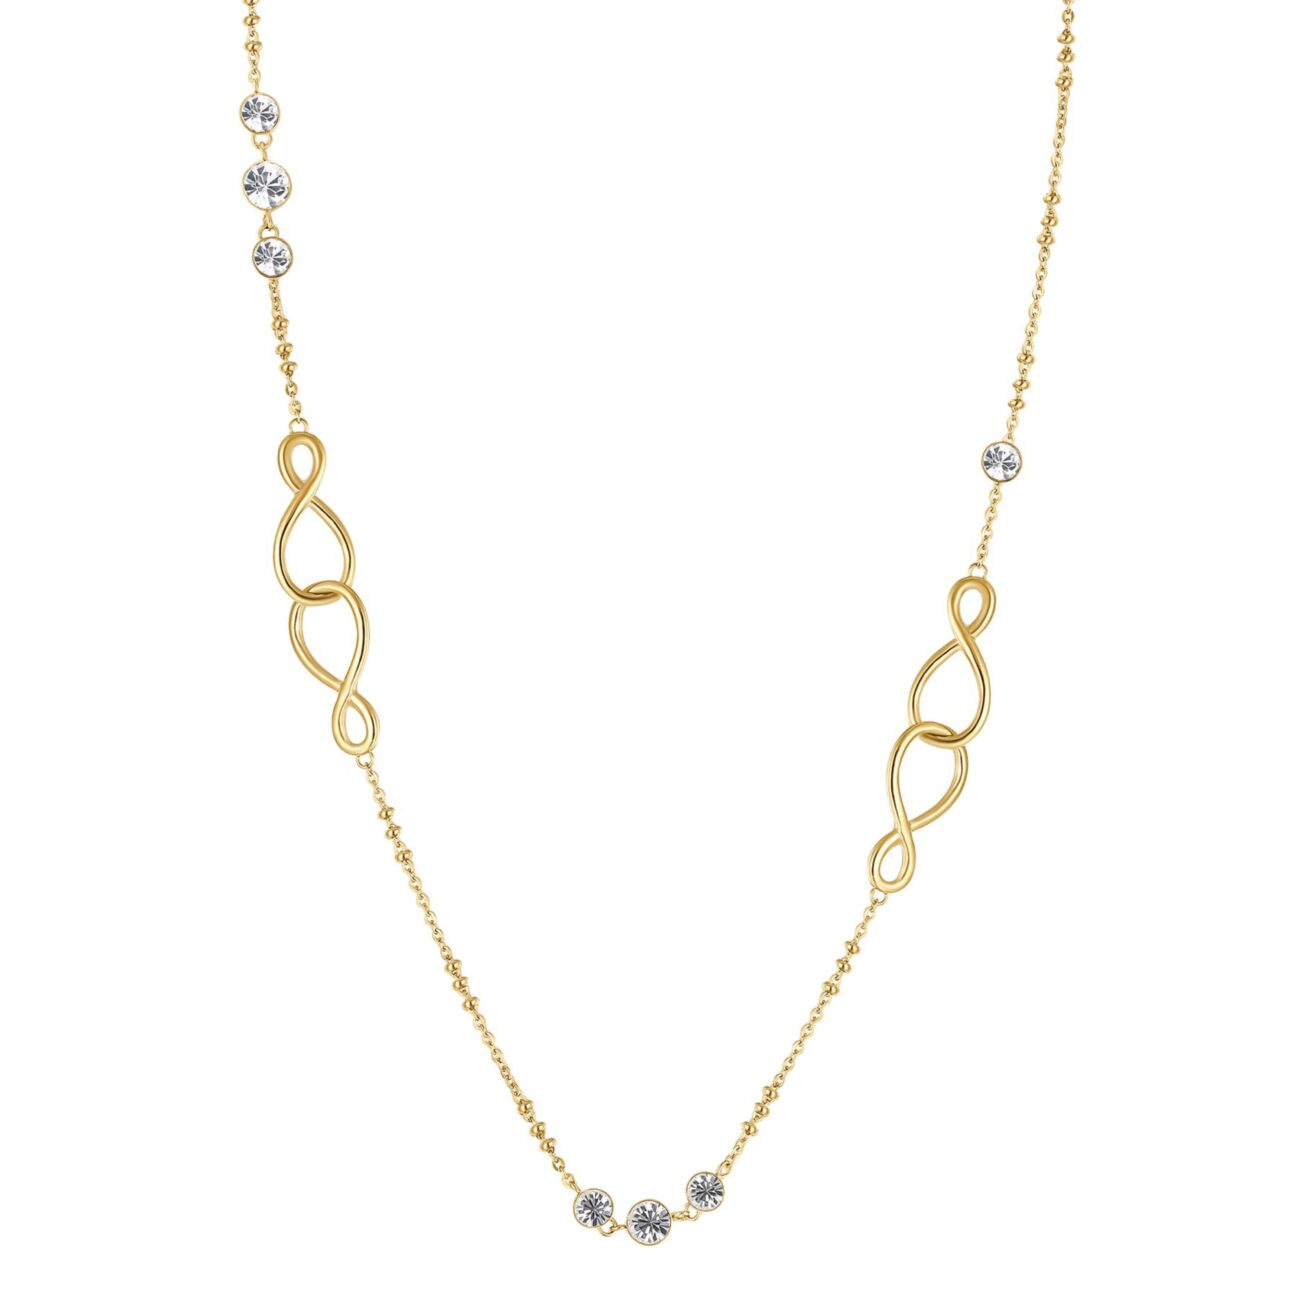 316L stainless steel necklace and gold finishes with crystals and infinity shaped details.